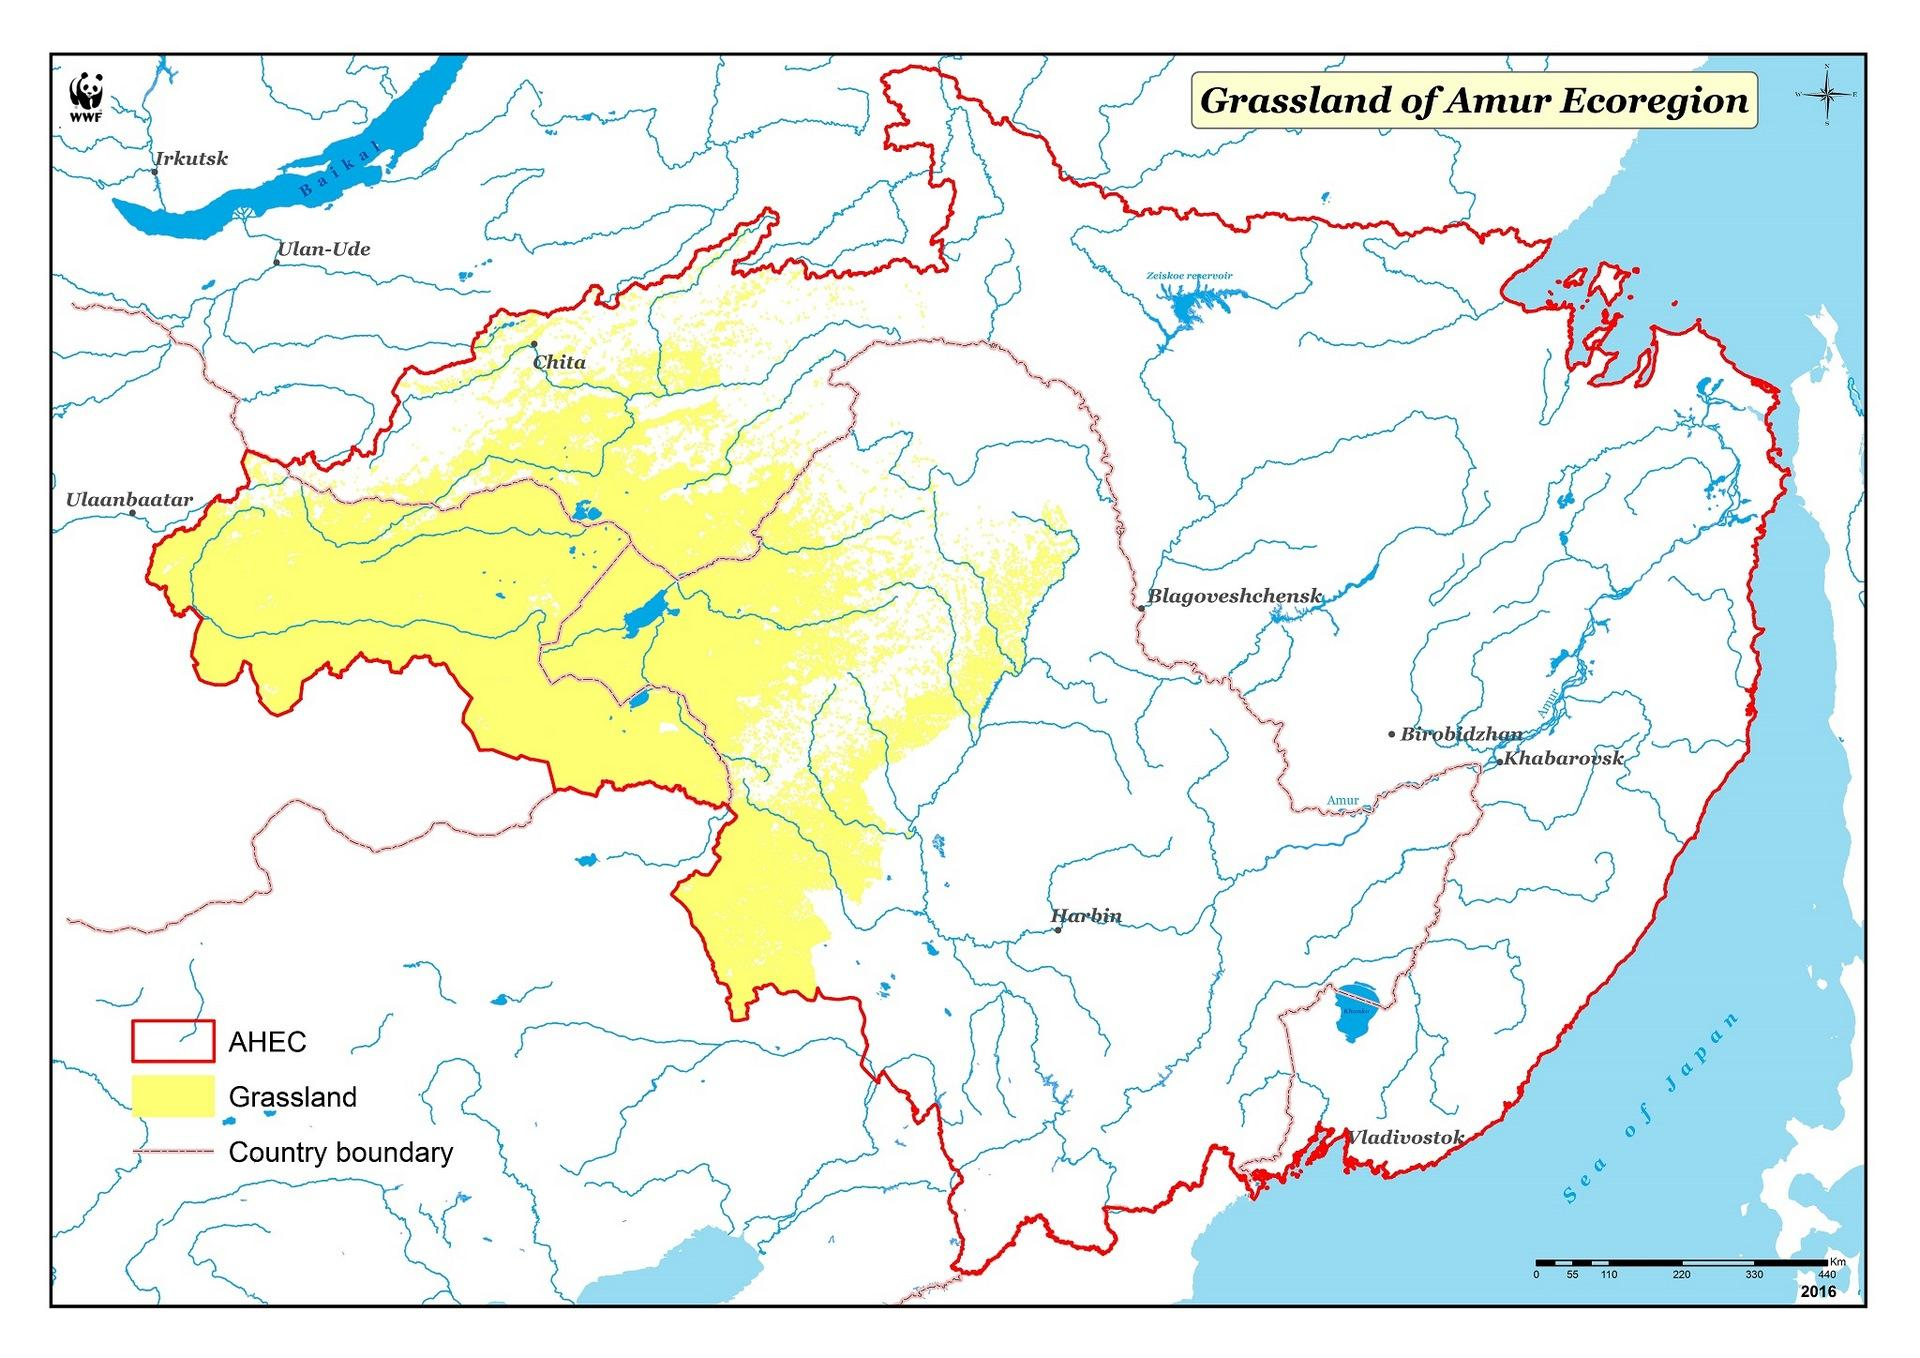 Map of the steppe (grassland) biom (AHEC)